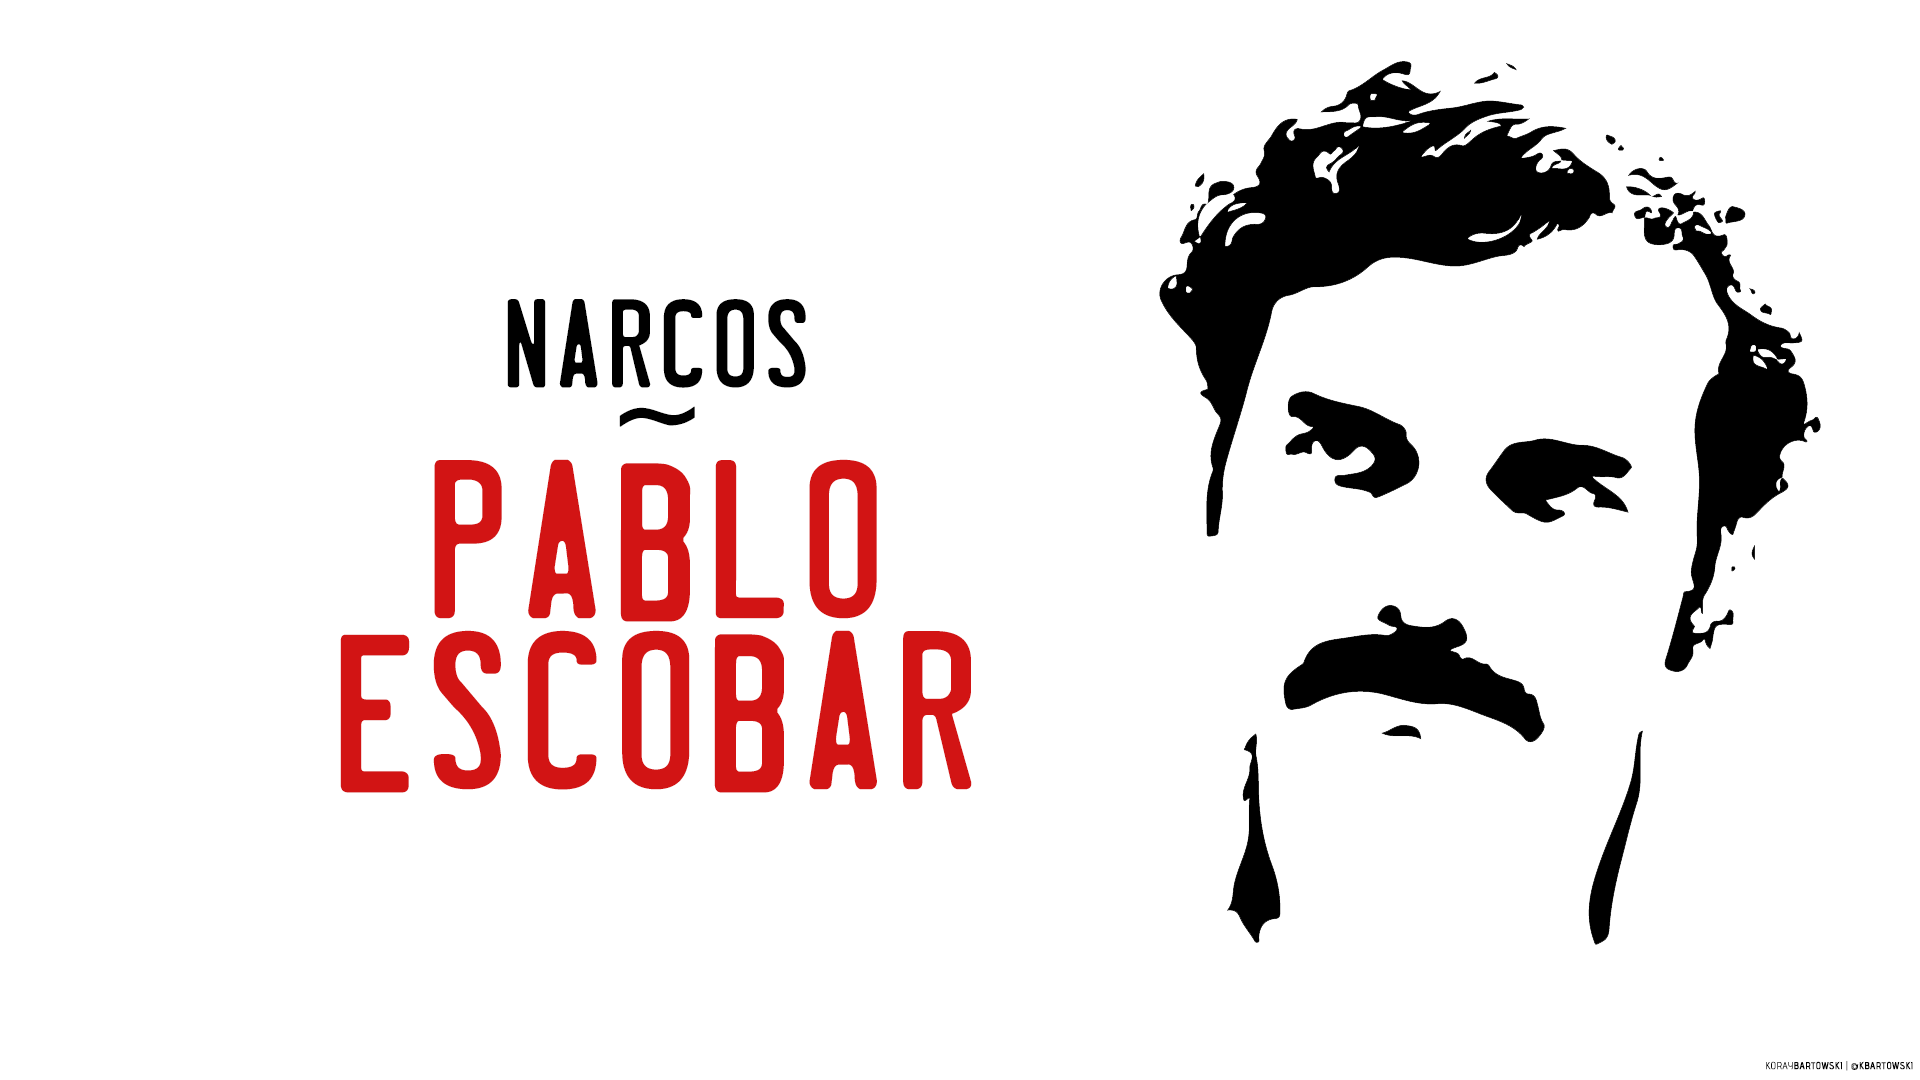 Breaking Bad Quotes Wallpaper Quot Narcos Quot Not Only For Boys Life Is A Theatre